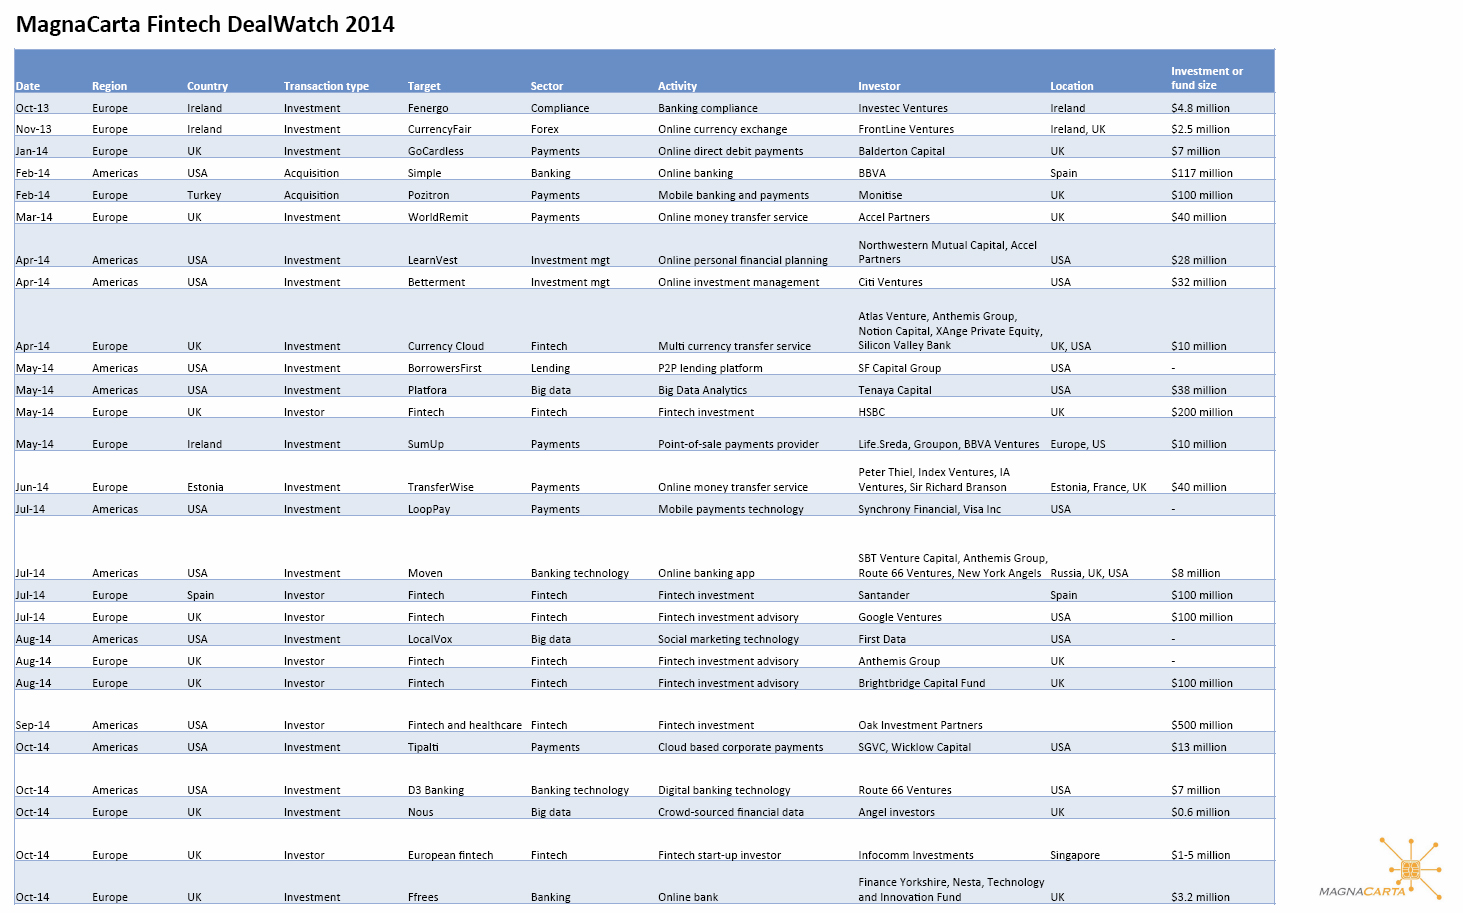 A table showing all the Fintech deals in 2014